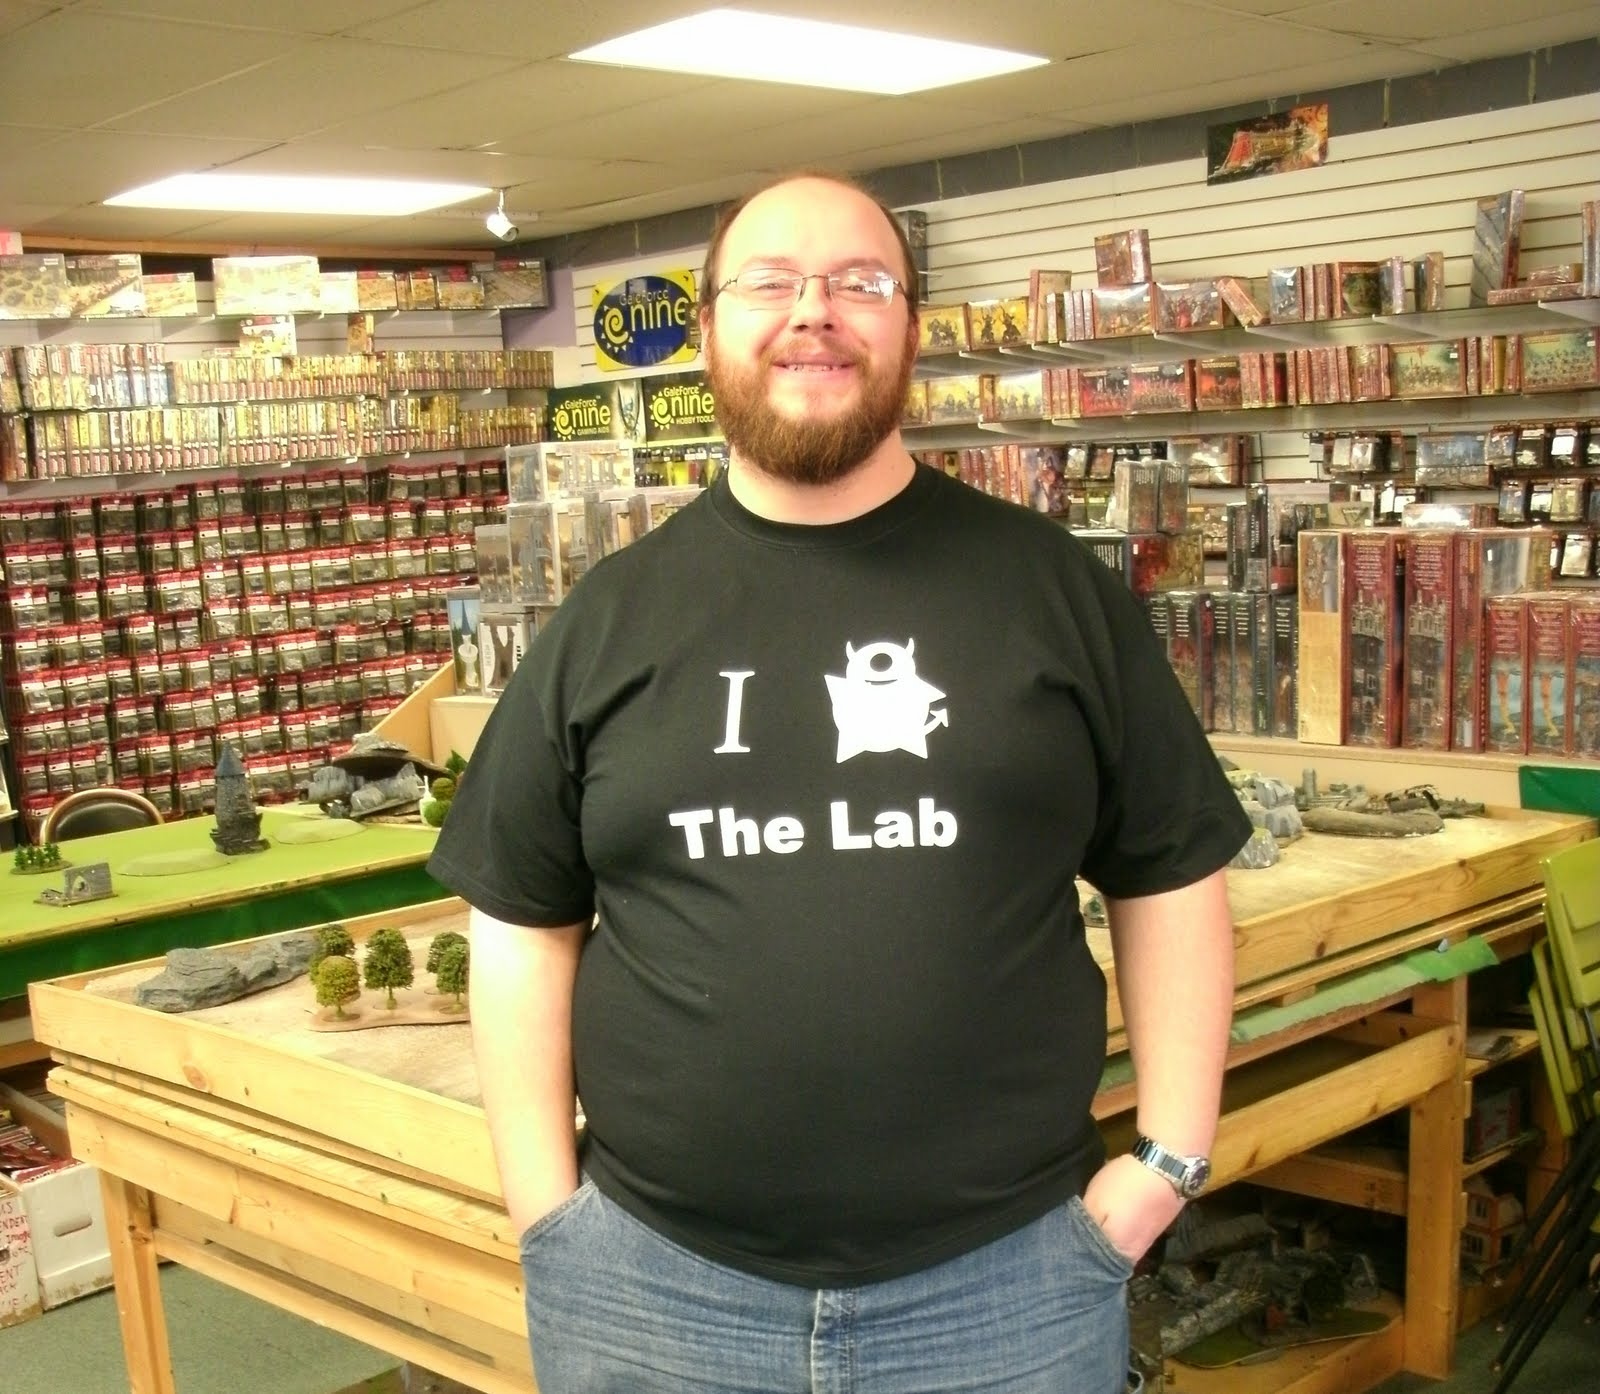 Shirt design lab - Here Andrew Brown A Local Hobbyist And Good Friend Is Wearing The First Design That Will Be Available To The Public For Sale The Design Is A Spin Off Of